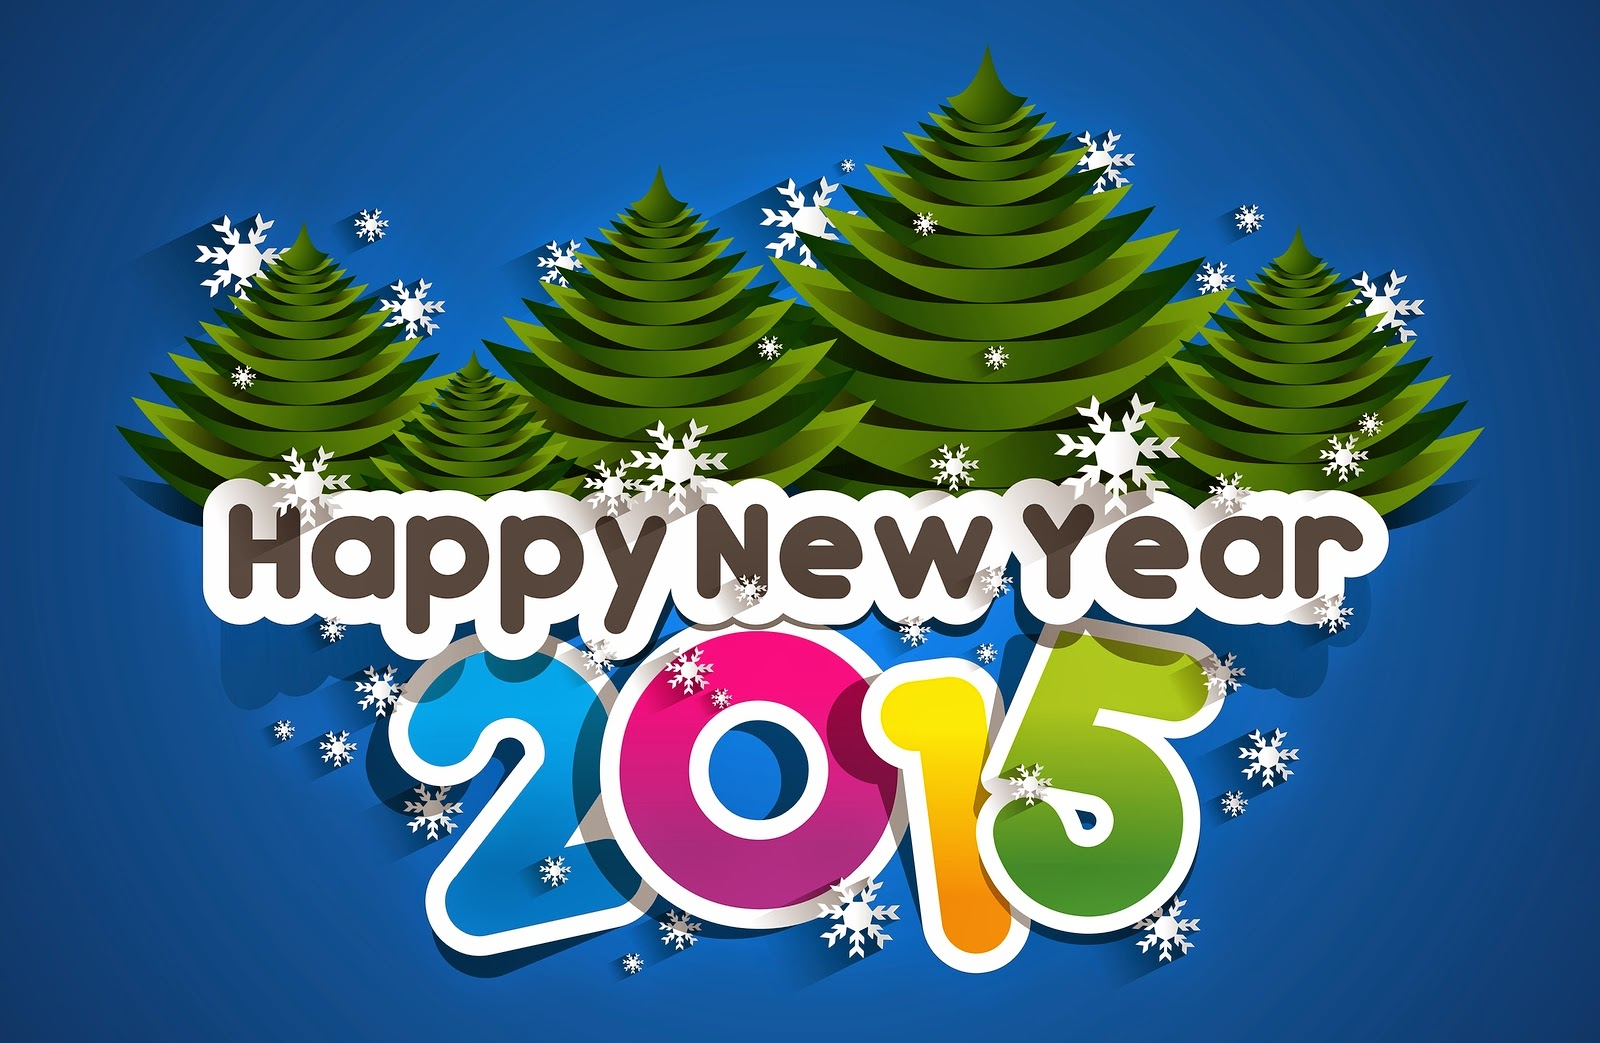 3D Lovely New Year 2015 Wallpapers For Facebook Timeline Cover 1600x1043